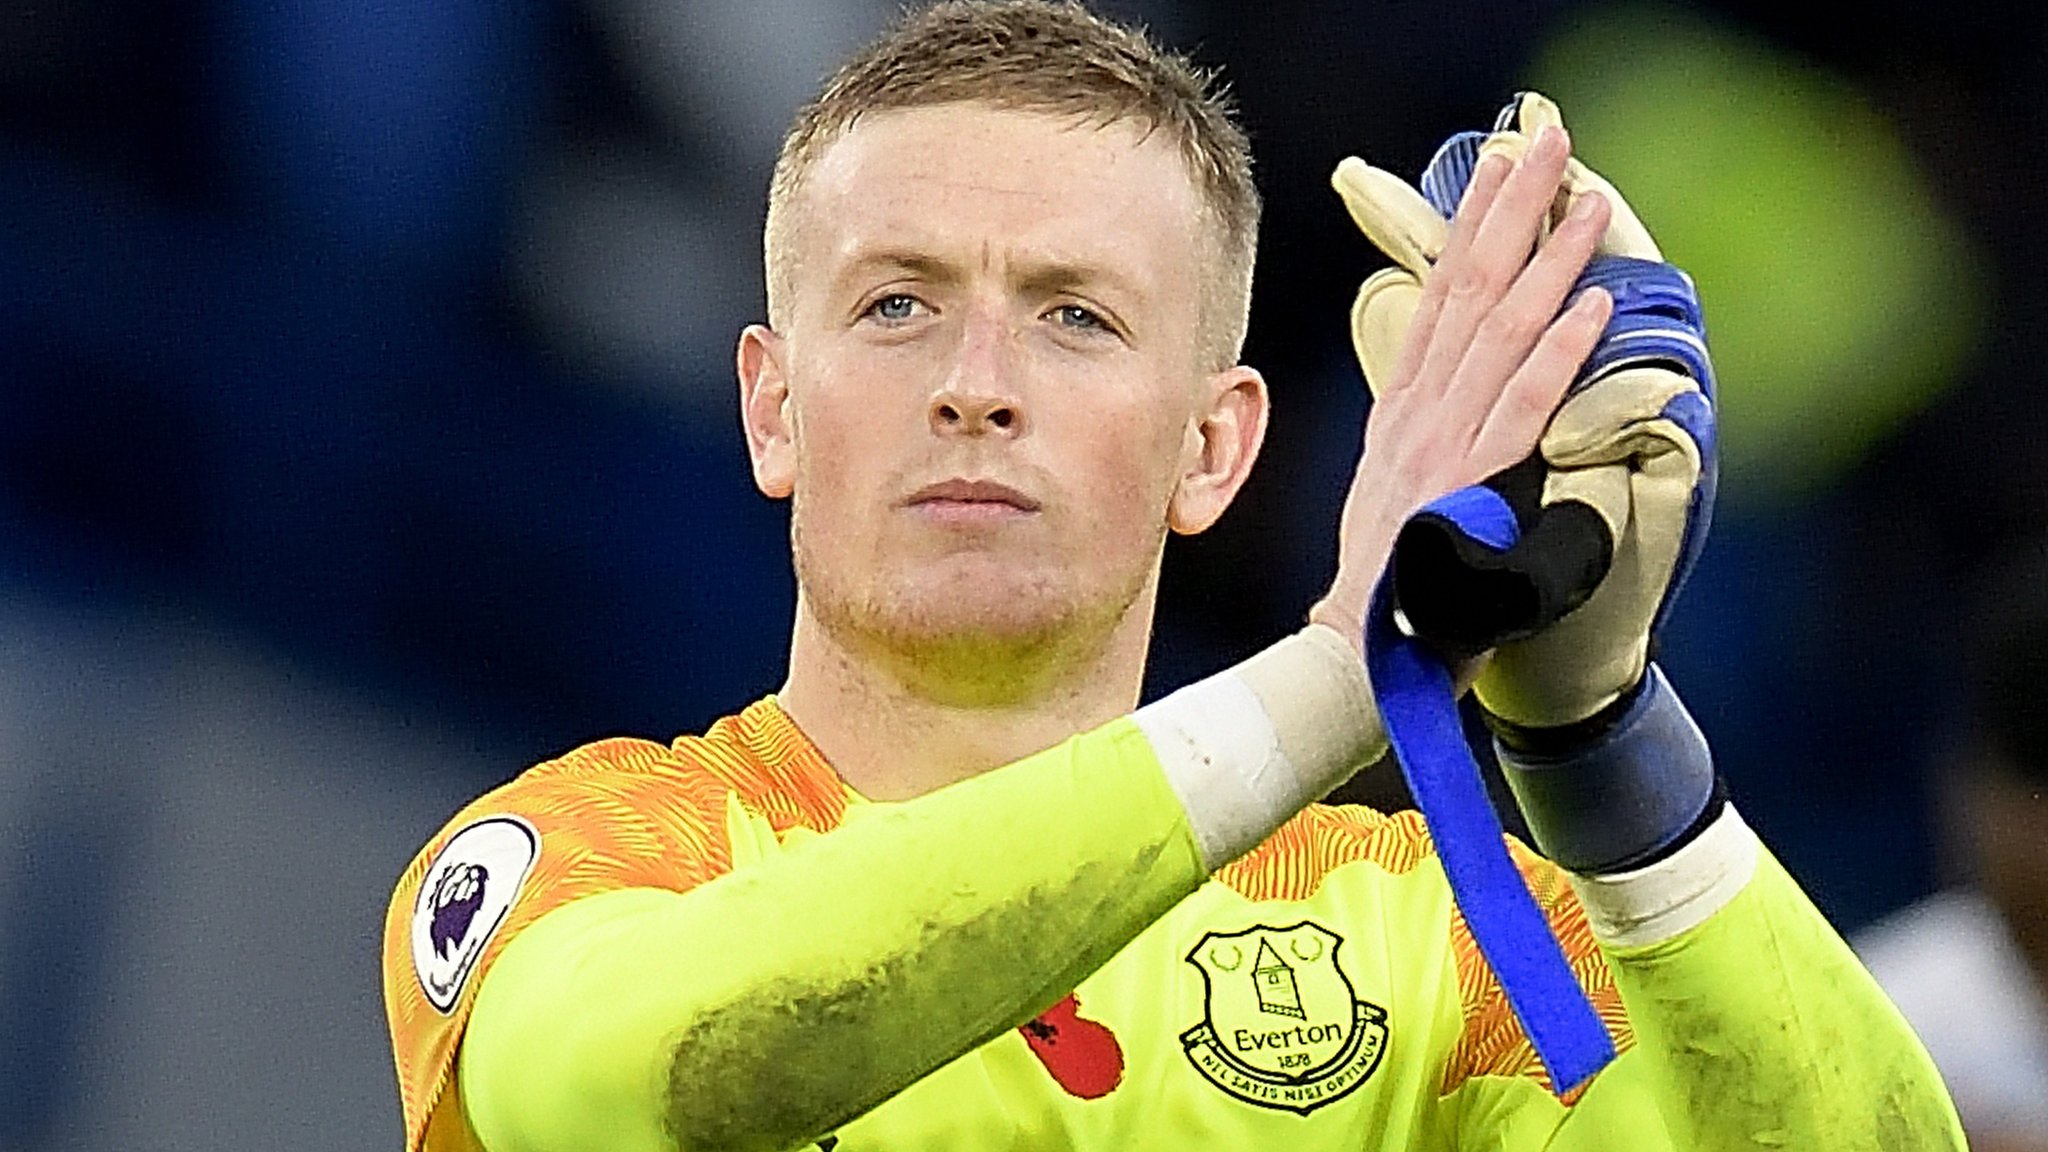 Be a buddy not a bully, says England keeper Pickford